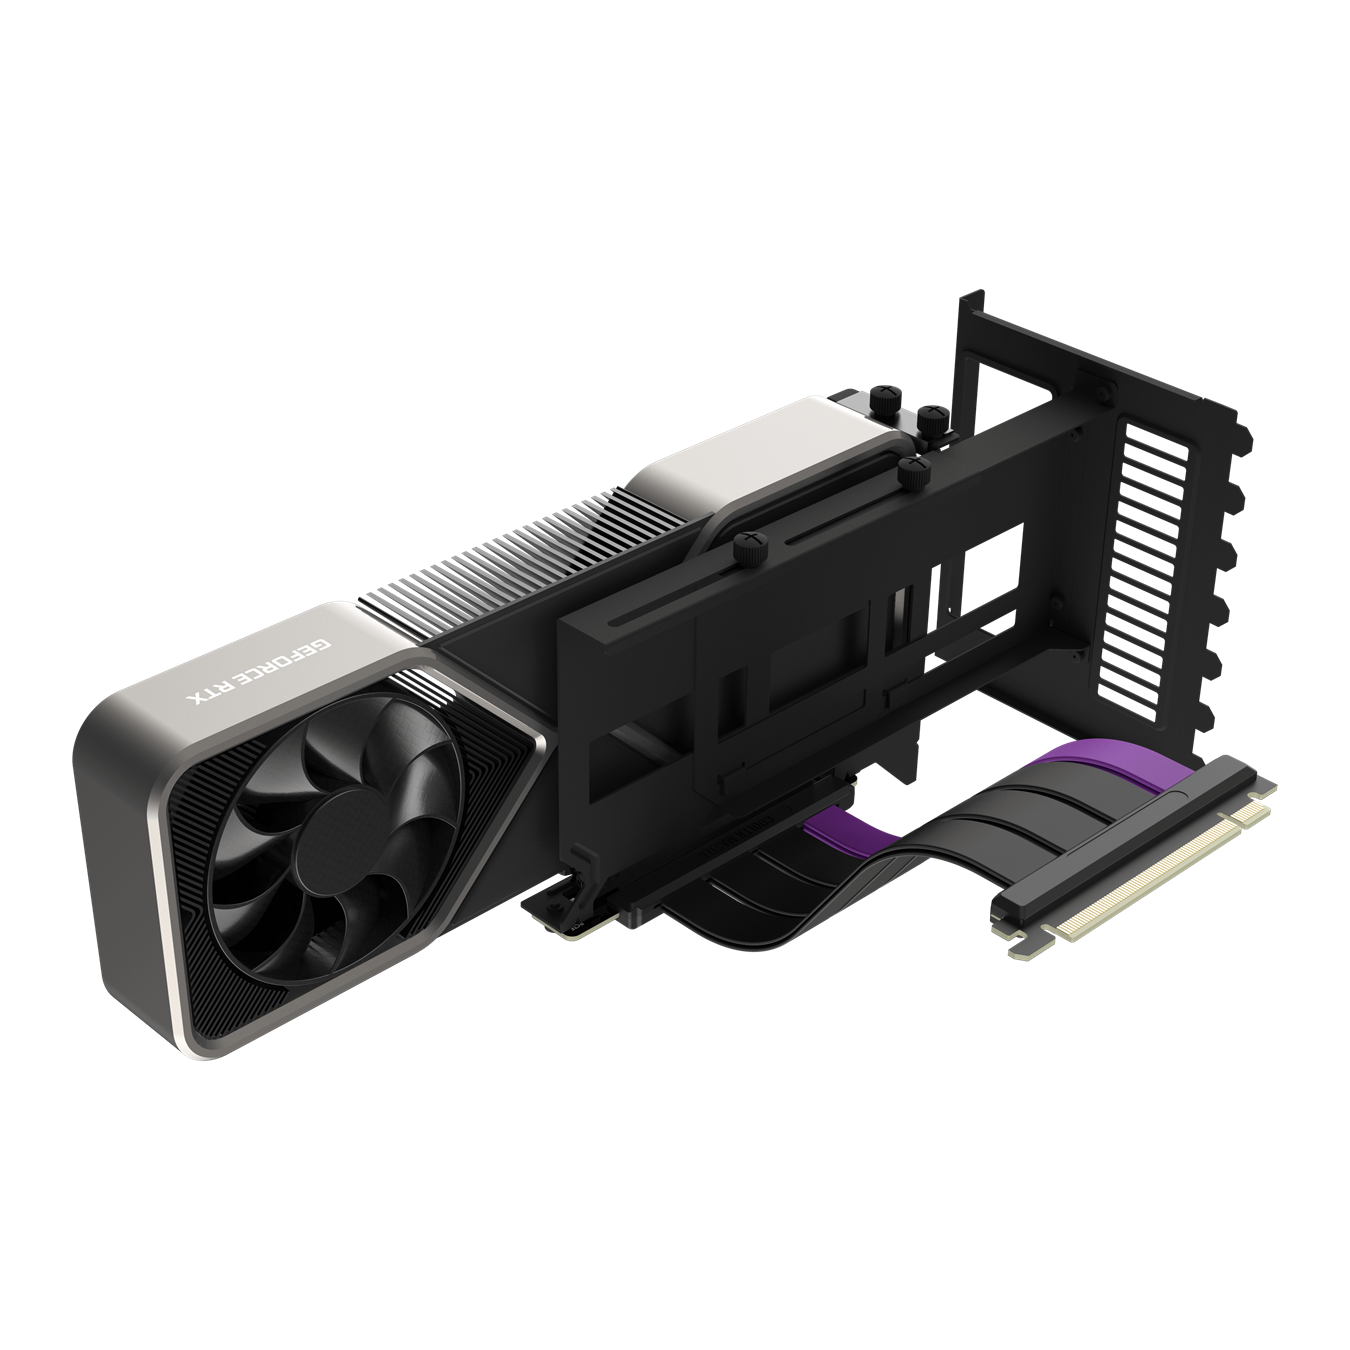 45 degree angled right side view of the extended black Universal Vertical GPU Bracket with included PCIe 4.0 riser cable and GPU installed.